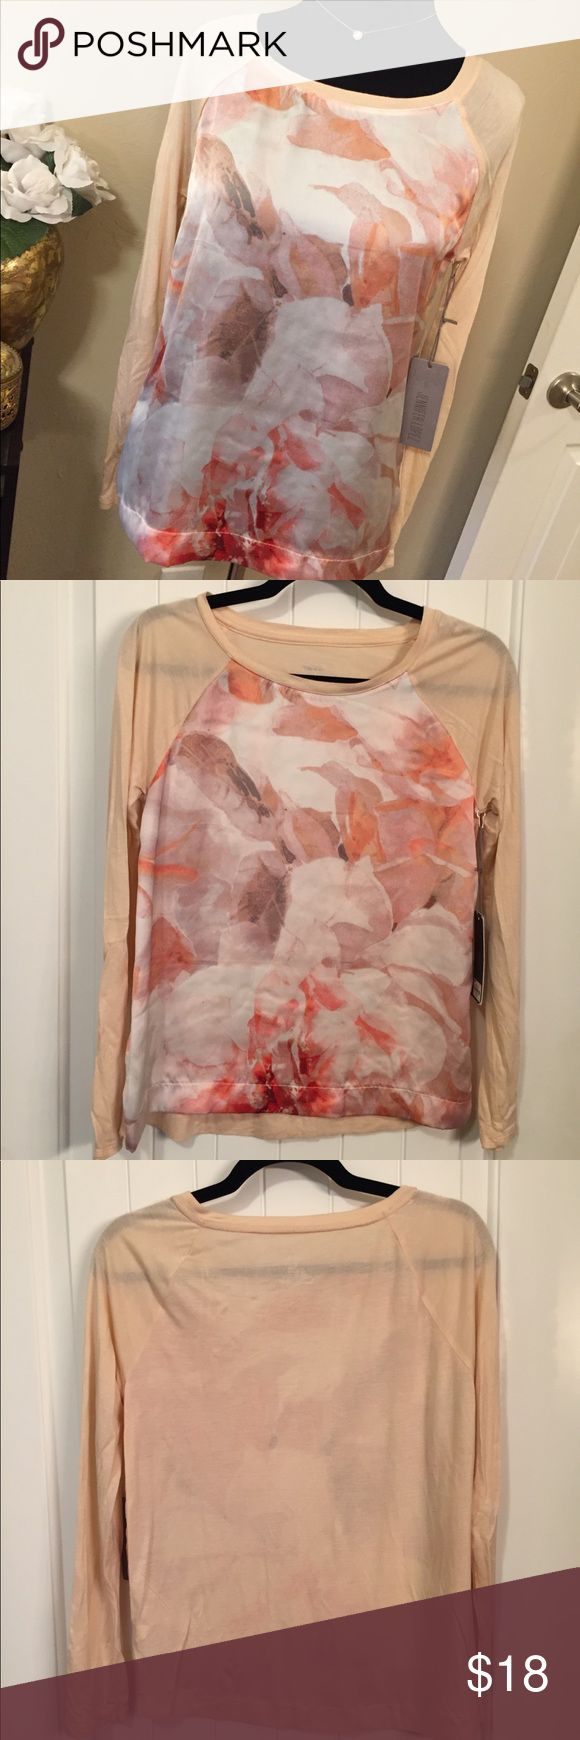 NWT JLo Floral Long Sleeve Top Jennifer Lopez pink floral top with long sleeves. Size Small. Very soft!! Front of top is a silky like material while back and sleeves are a soft knit material. BRAND NEW WITH TAGS! :) Jennifer Lopez Tops Blouses